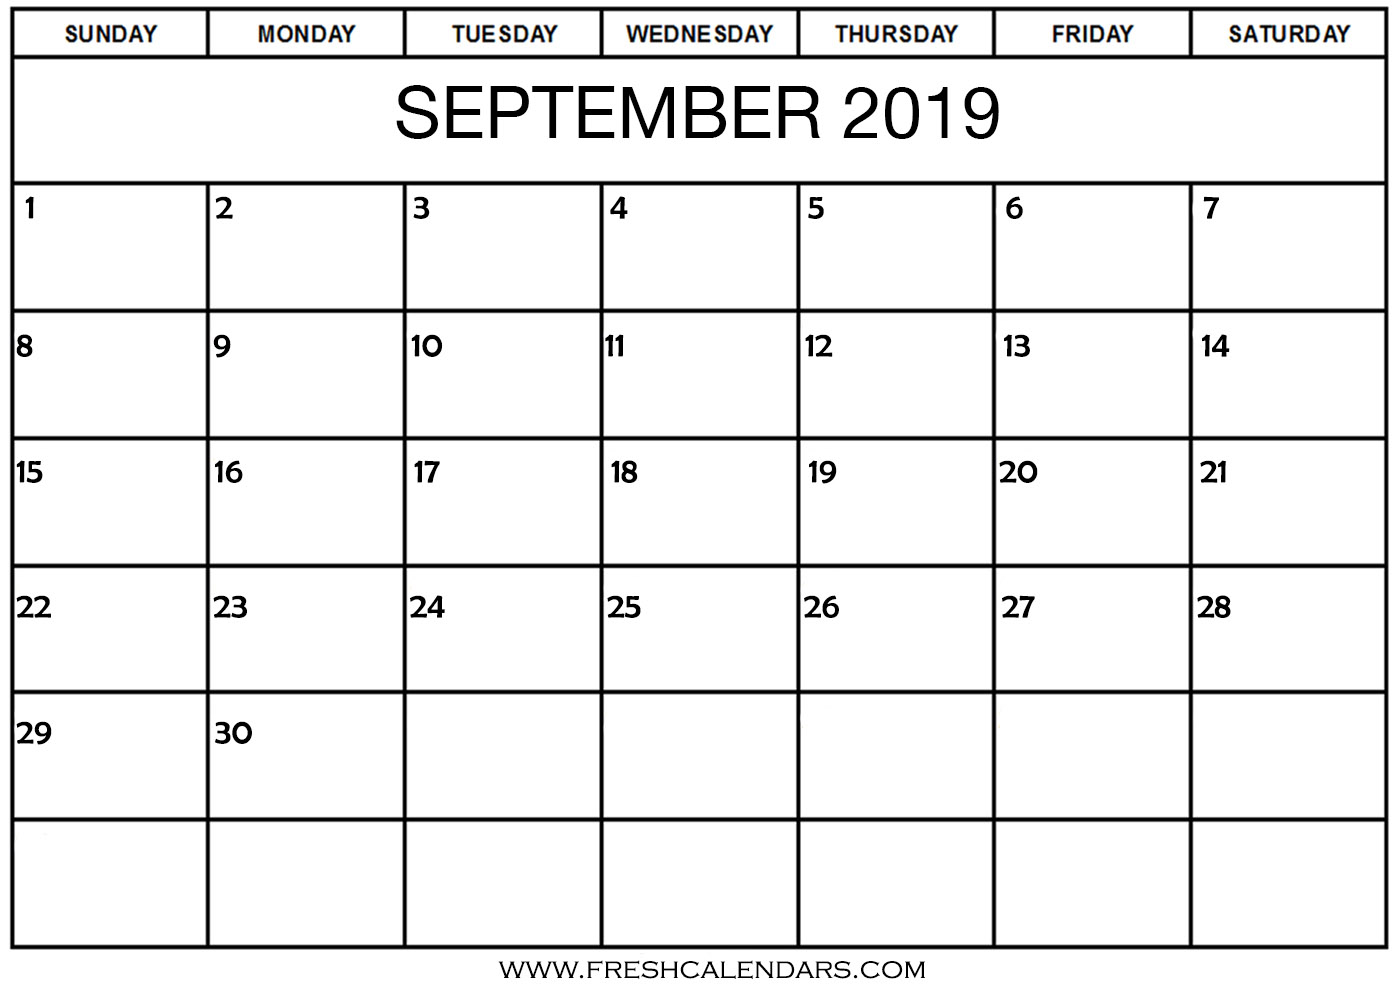 September 2019 Calendar Printable Templates